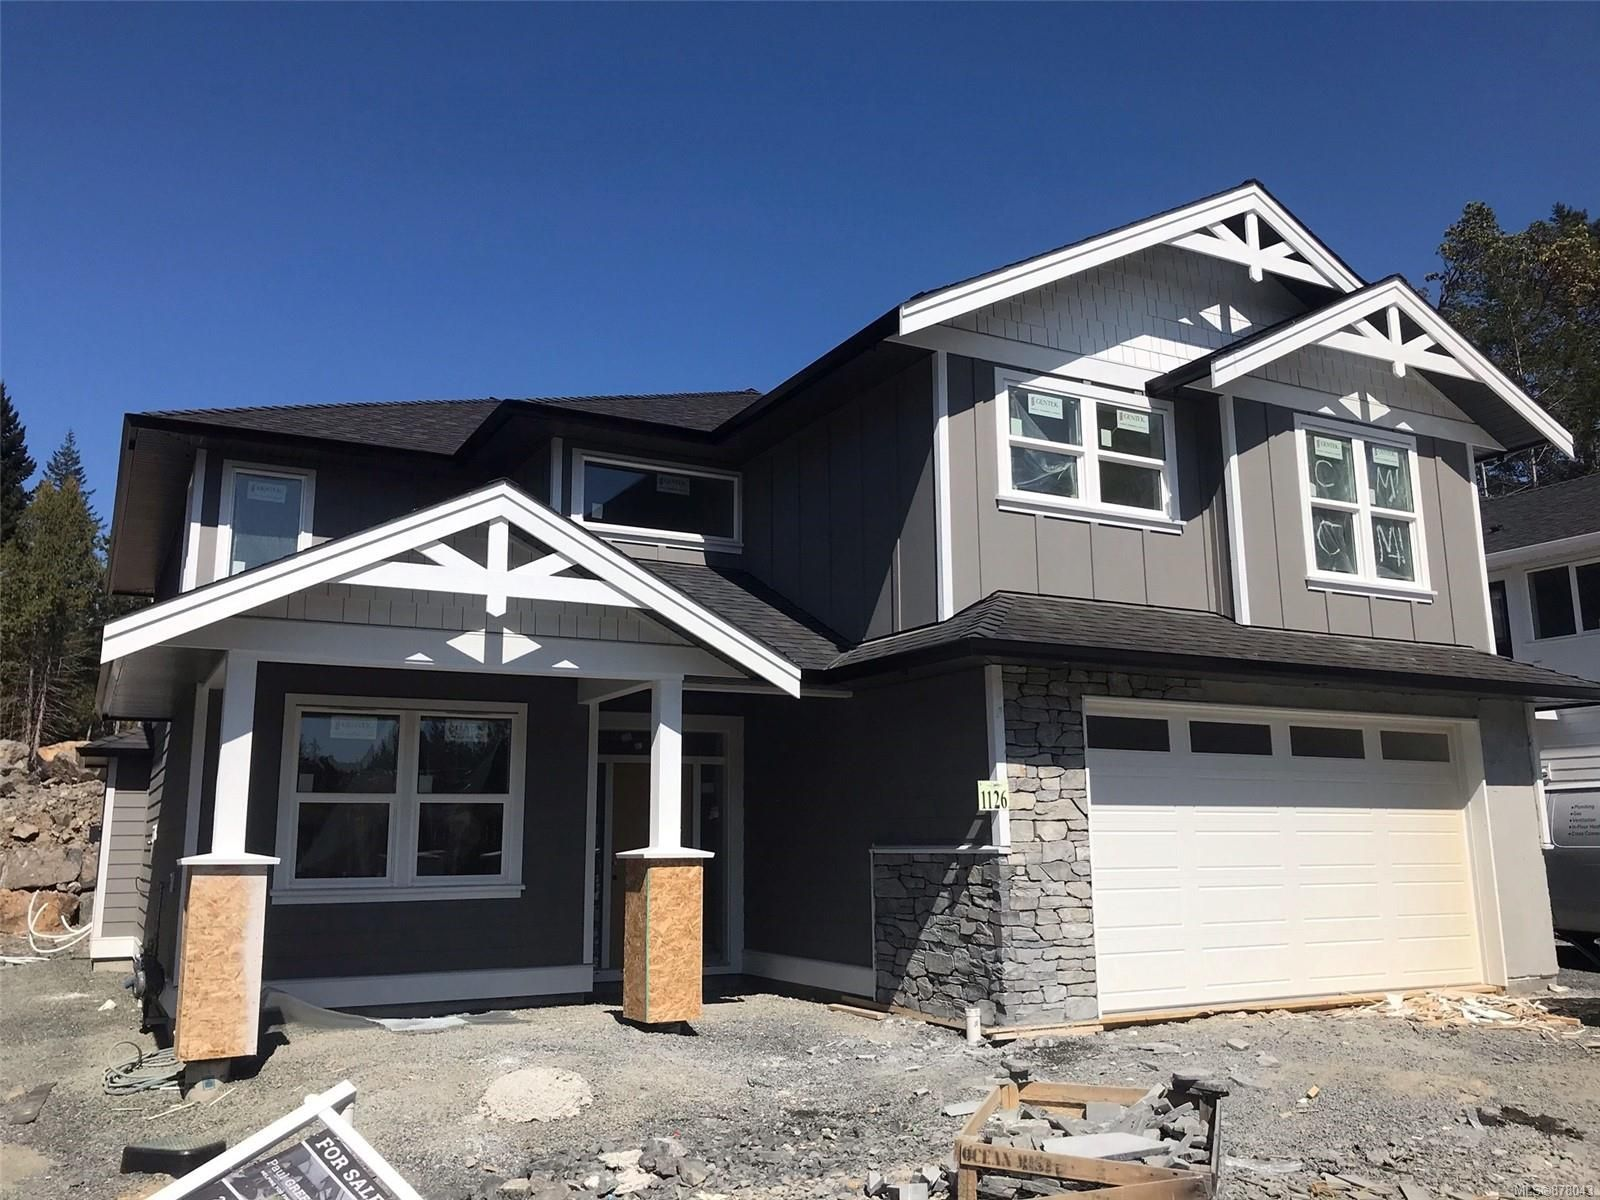 Main Photo: 1126 Golden Spire Cres in Langford: La Olympic View House for sale : MLS®# 878043